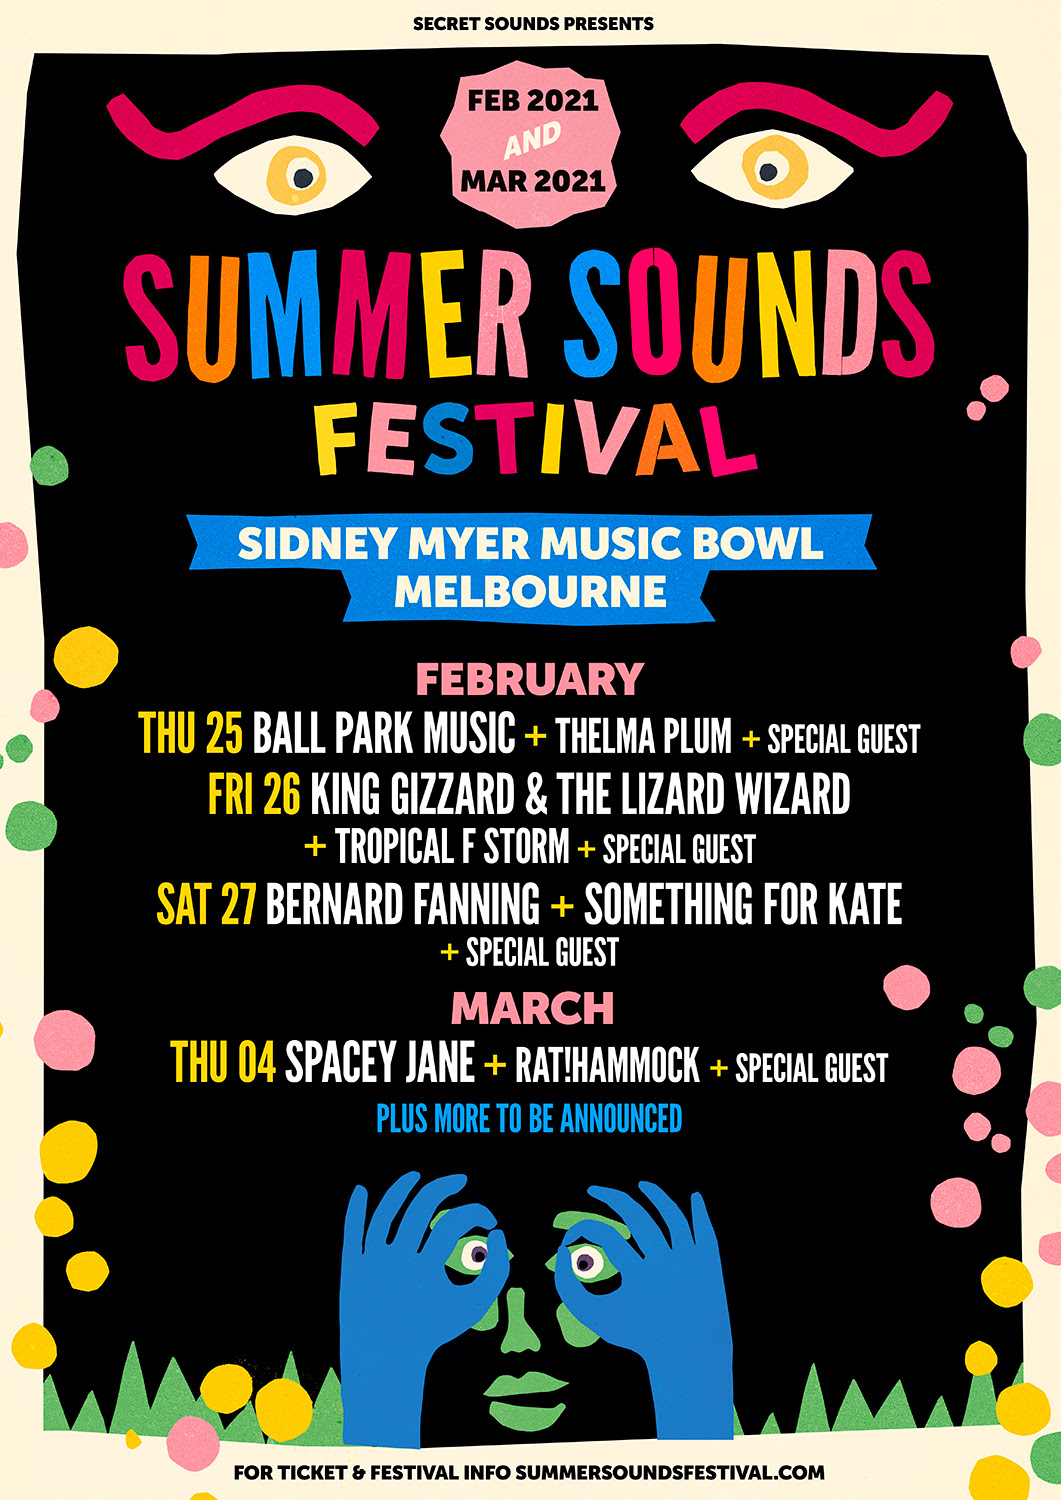 SUMMER SOUNDS FESTIVAL MELBOURNE